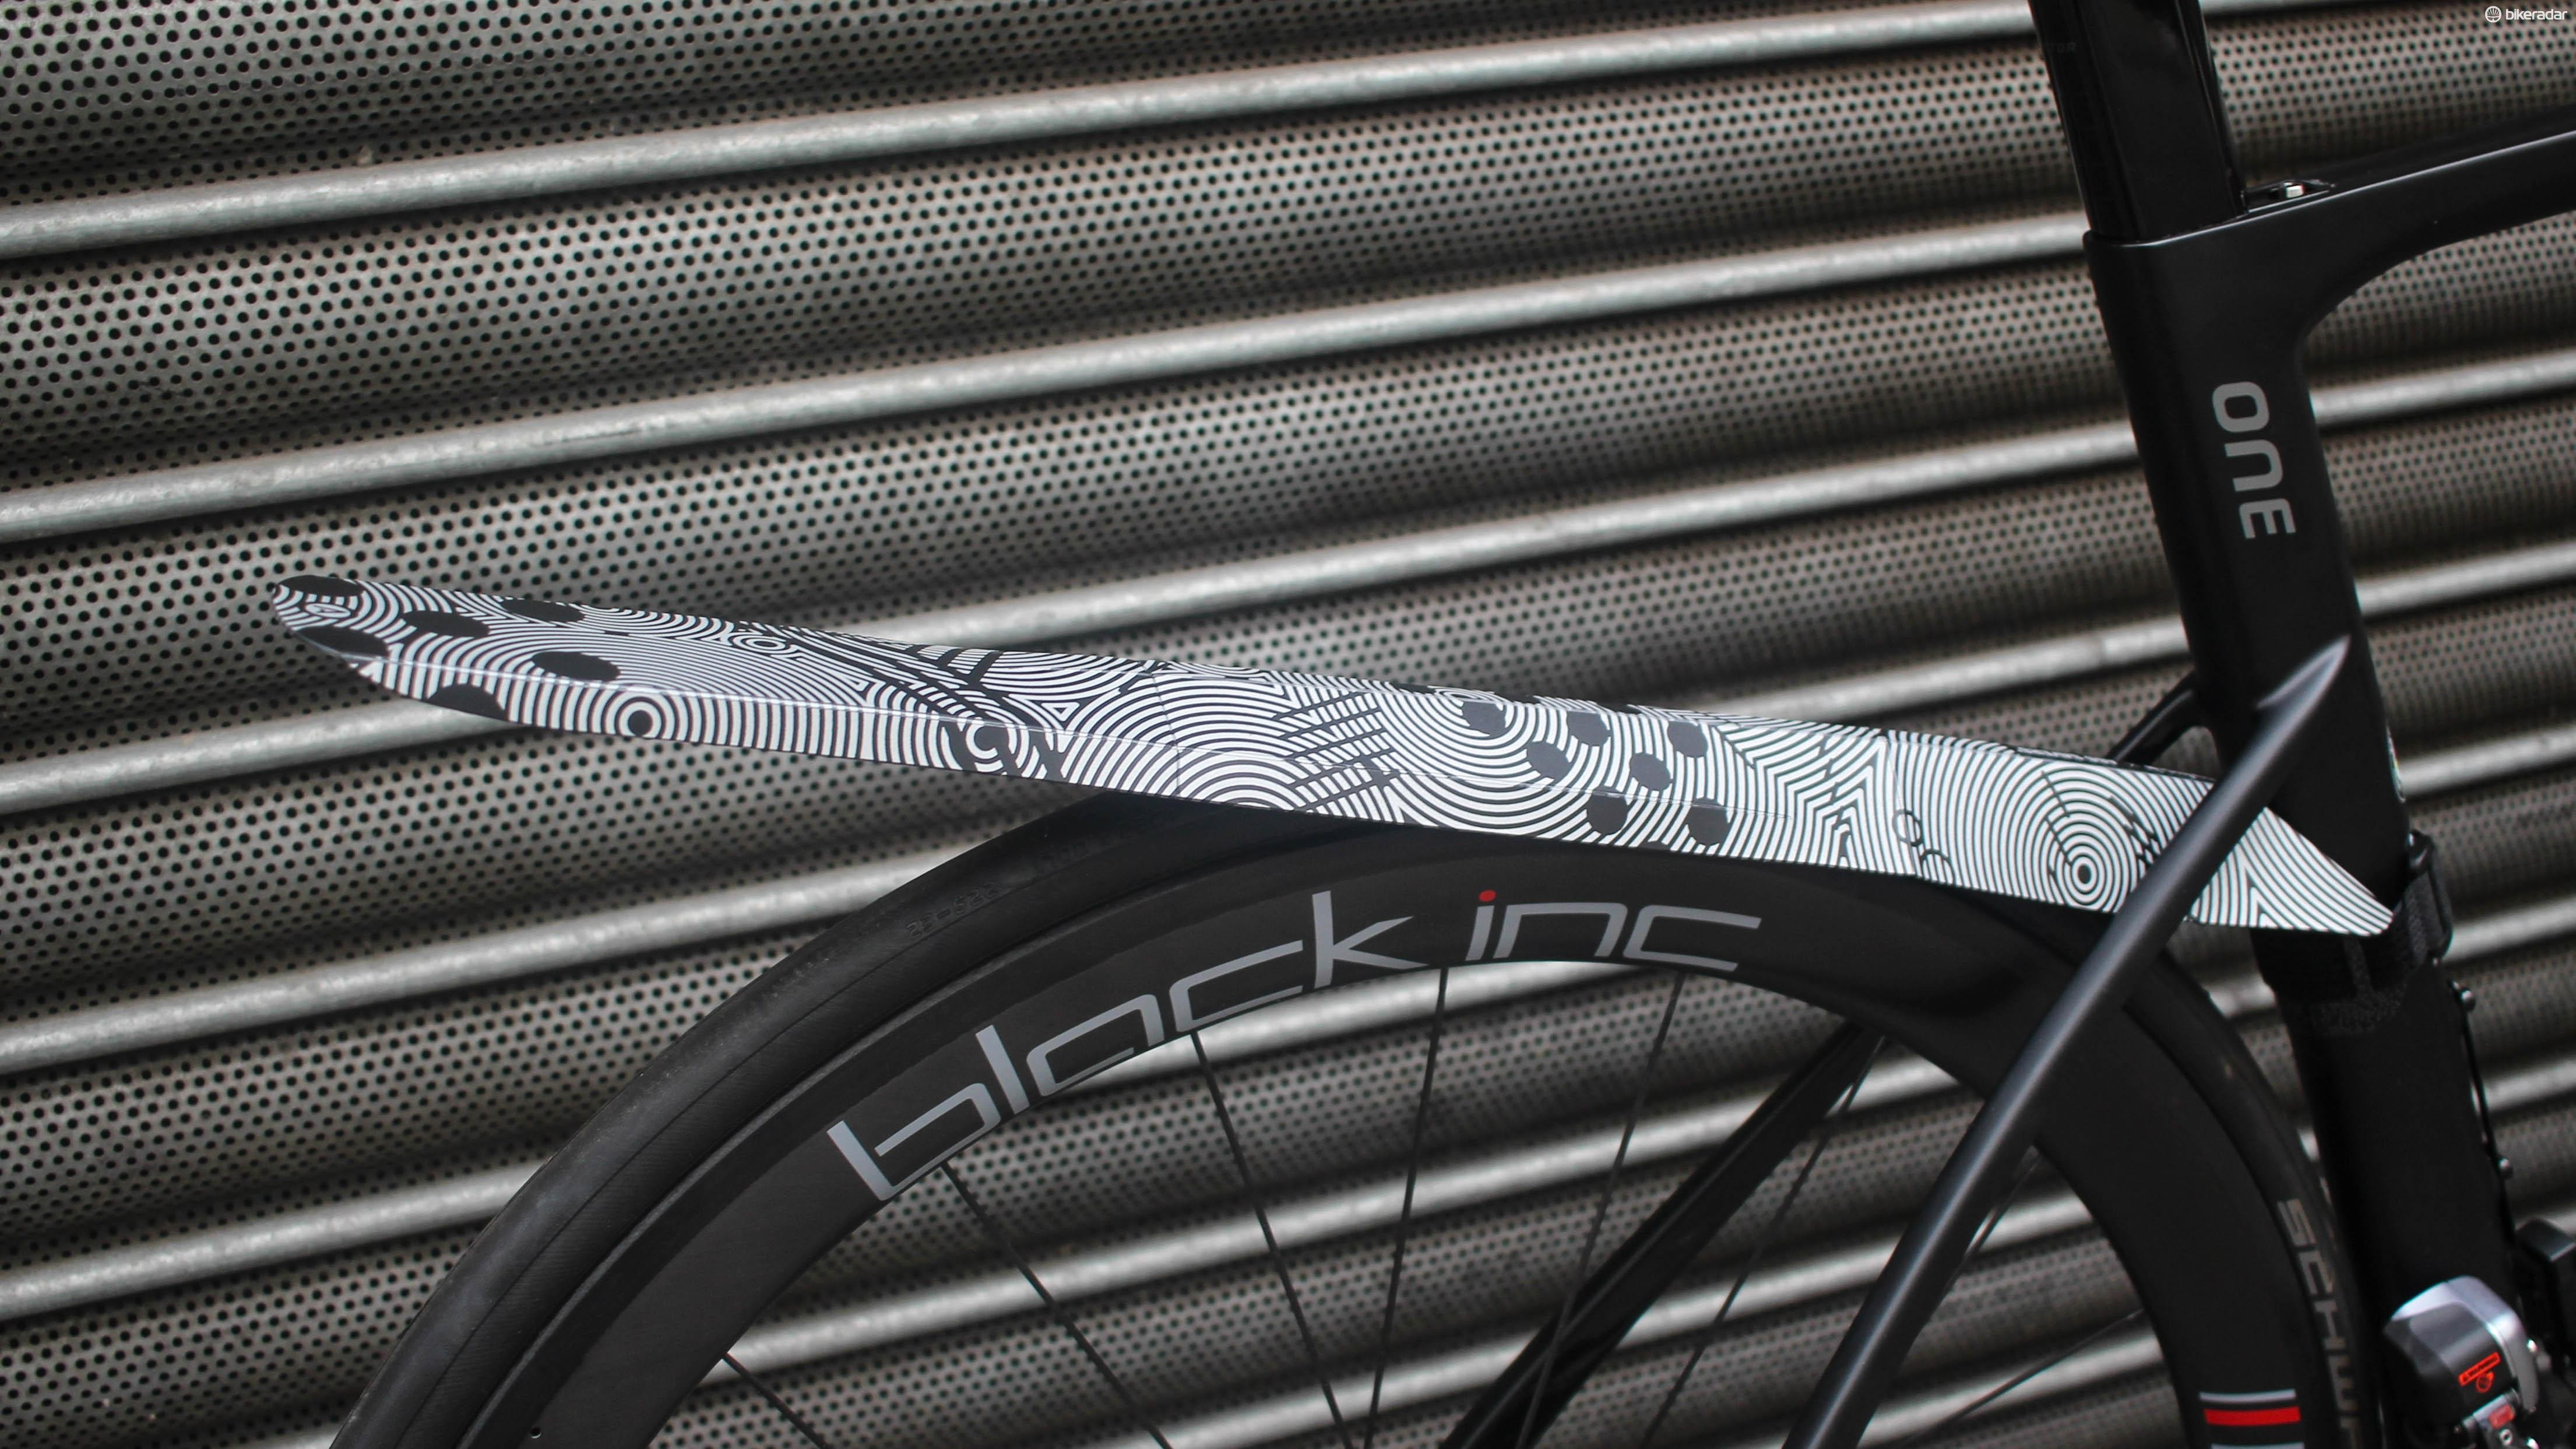 """This Fendor Bendor has a reflective design by top illustrator Bicycle Crumbs, and is described as the """"Jedi laser sword"""" of mudguards"""